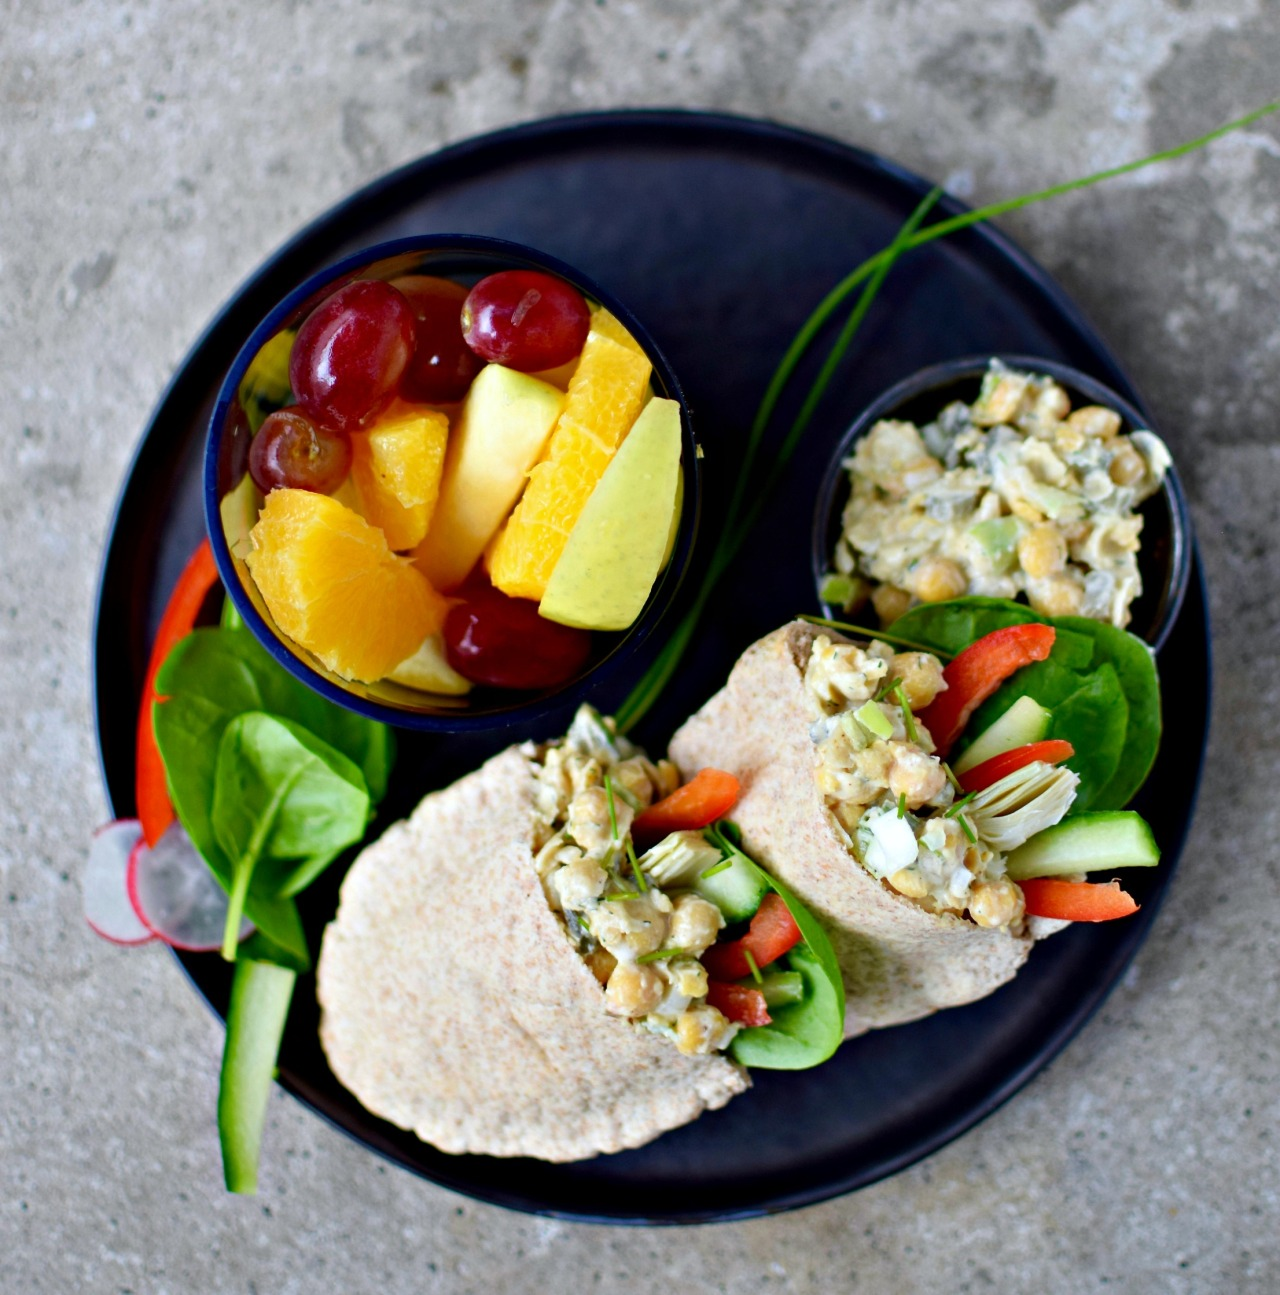 Crushed chickpeas mixed with creamy lower-fat homemade ranch dressing and chopped vegetables make a perfect vegetarian lunch. Try it in pittas, lettuce wraps or even scooped up with baked tortilla chips.